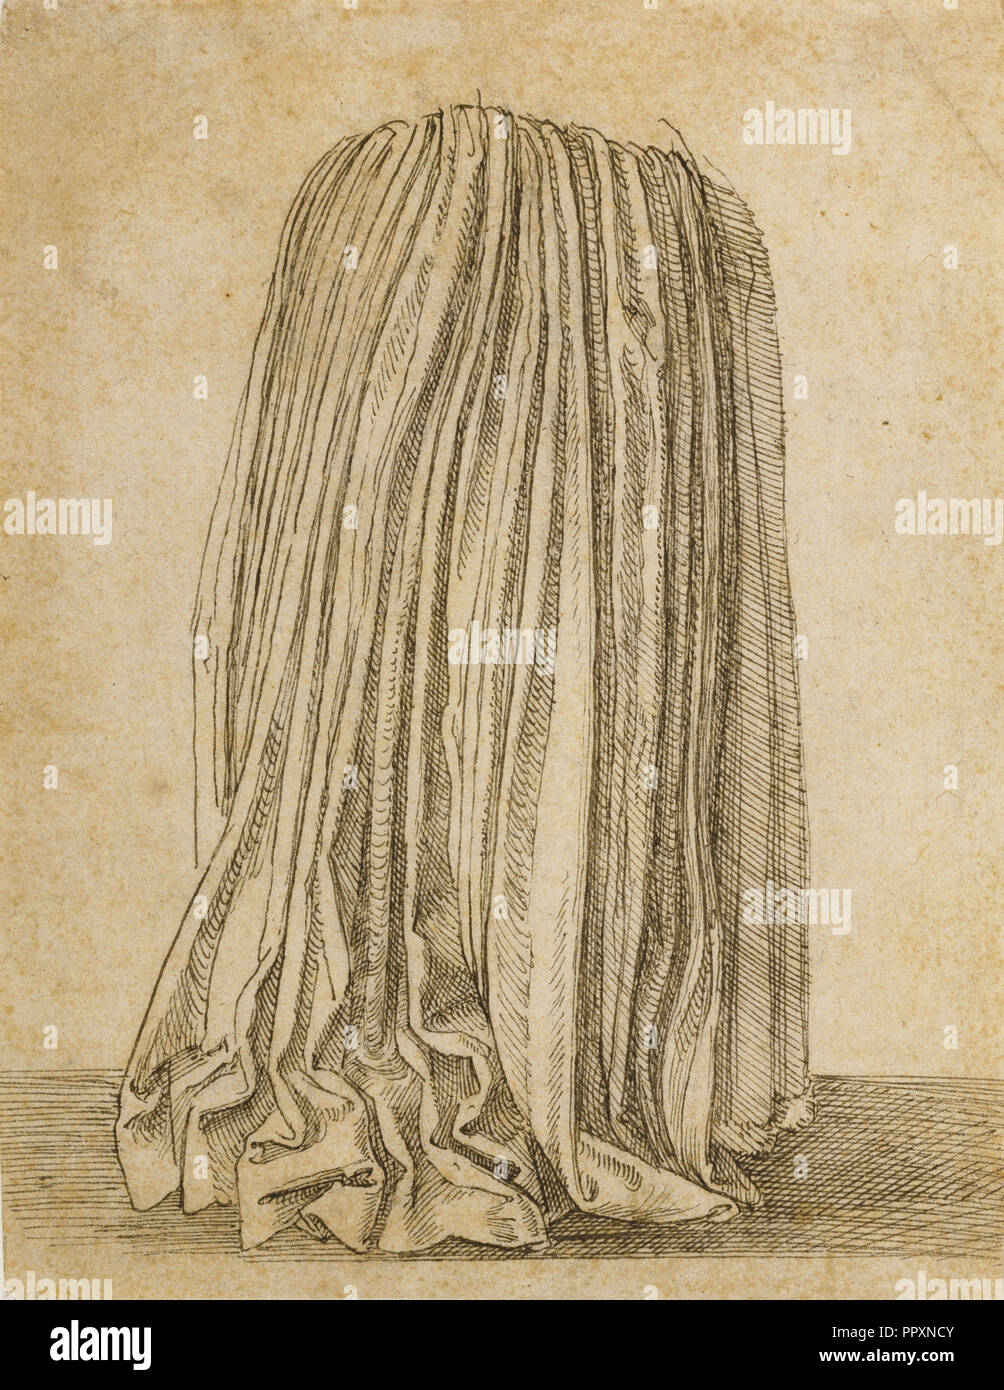 Study of a Pleated Skirt; Hans Brosamer, German, about 1500 - about 1554, about 1530 - 1540; Pen and black ink; 19.7 × 14.9 cm - Stock Image